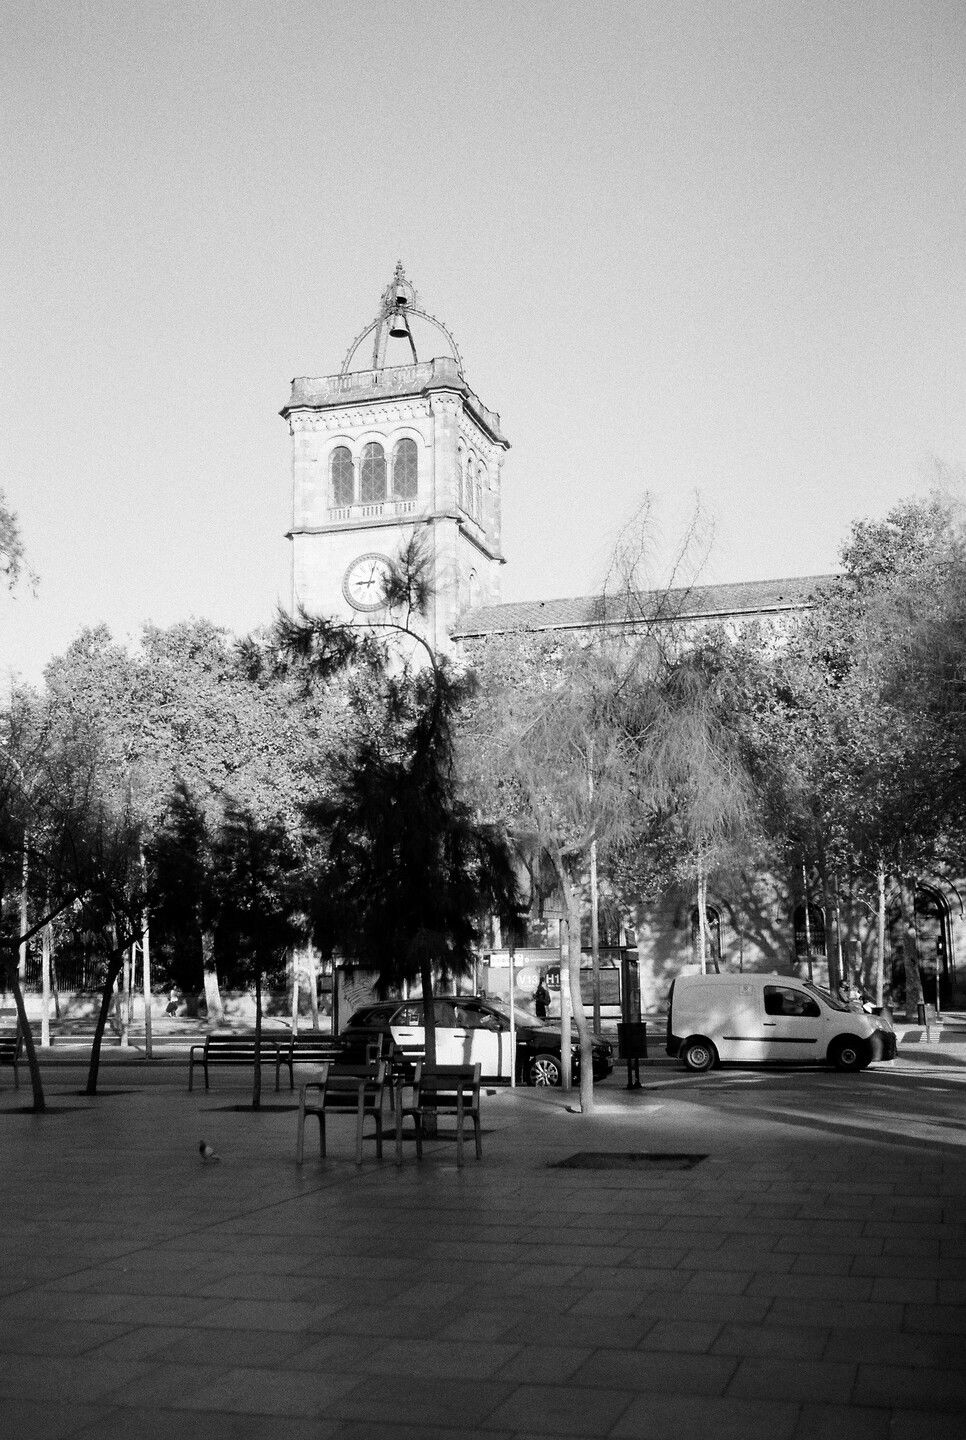 Sep 22, 2019 - Barcelona in Black and White: 11